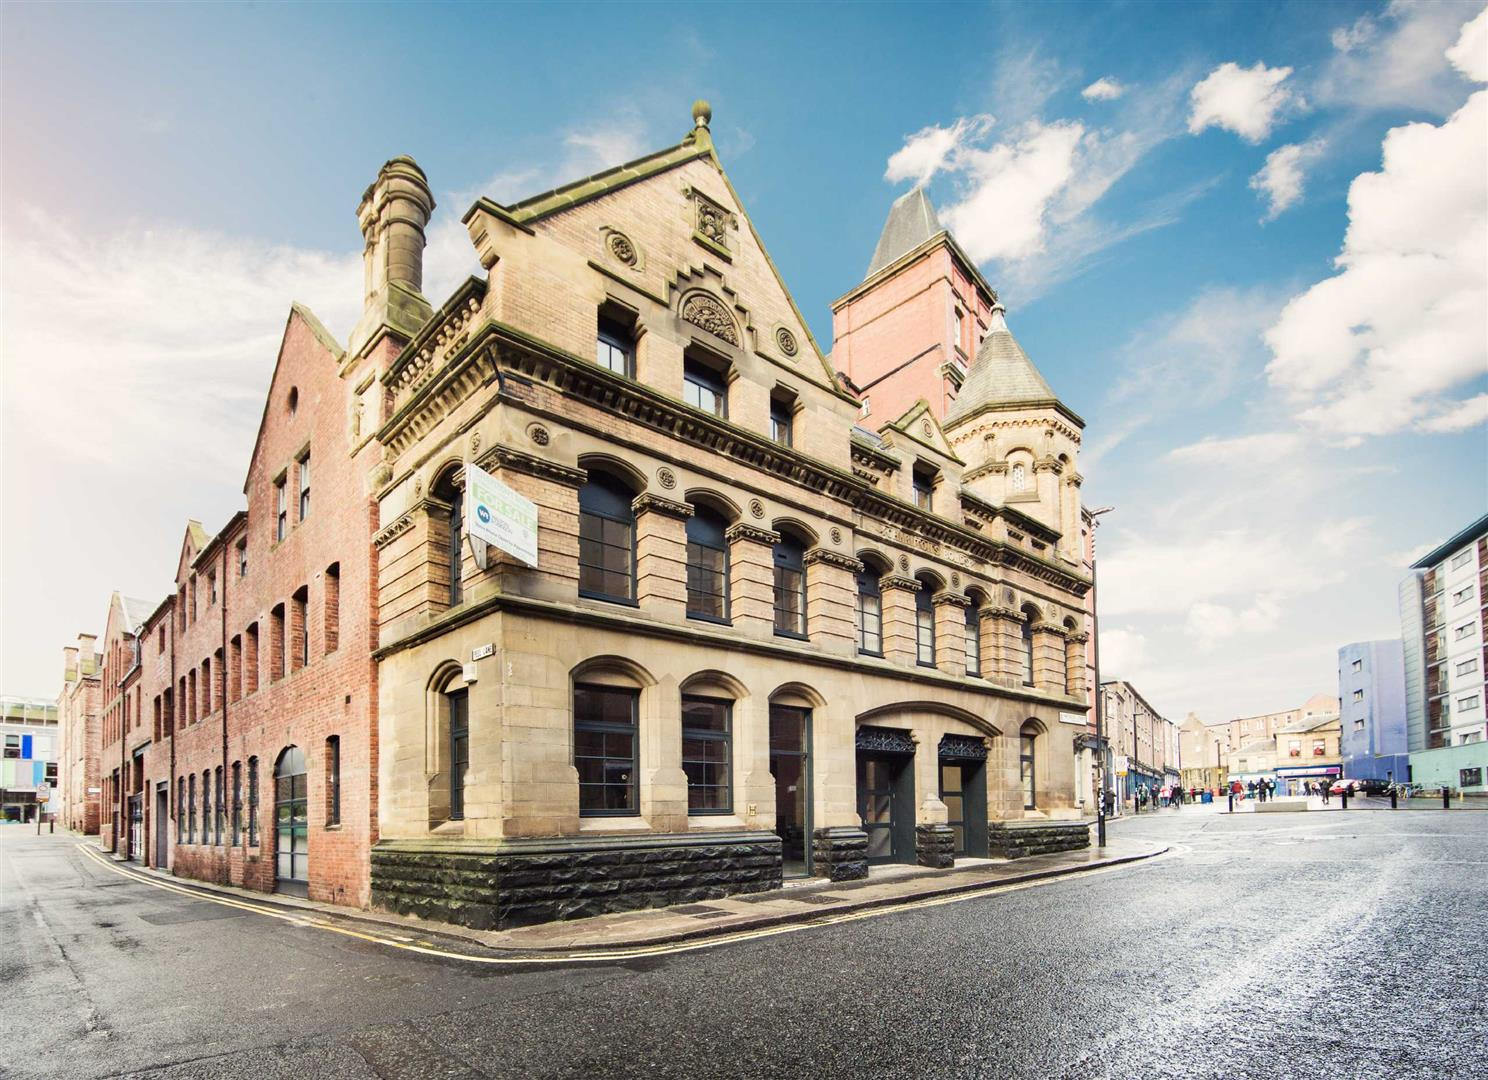 Charlton's Bonds Newcastle Upon Tyne, 1 Bedrooms  Apartment - conversion ,Under Offer